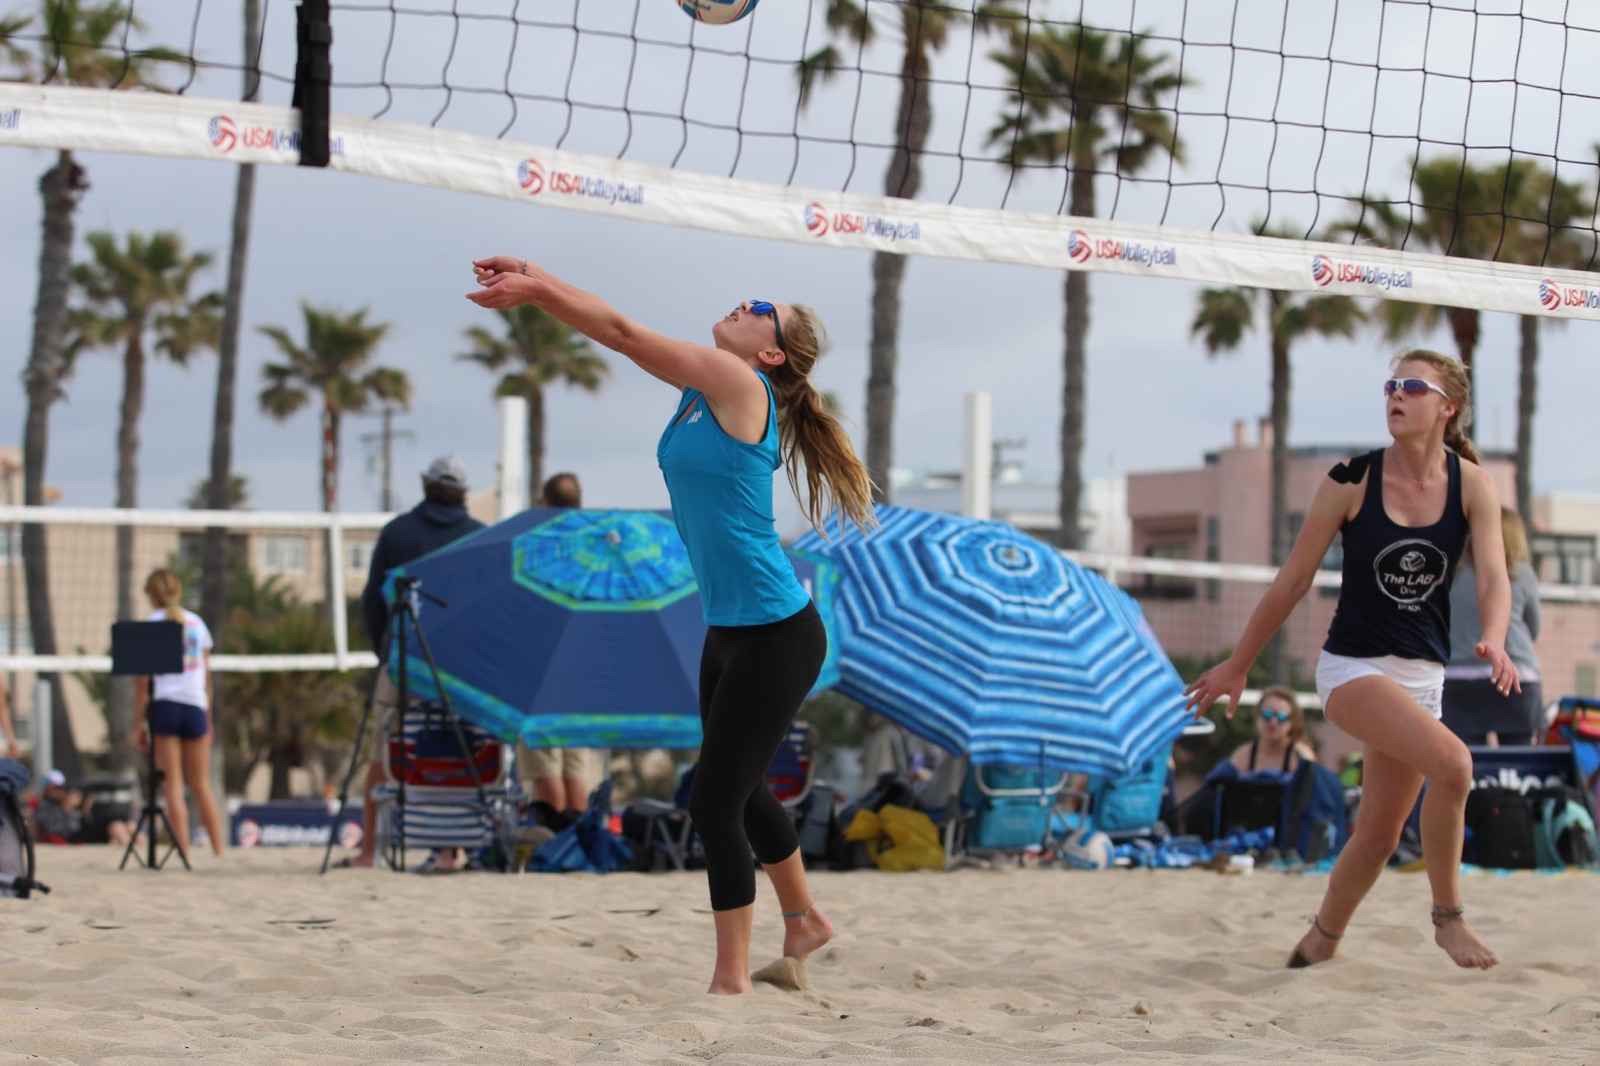 Parkite Brie Miller sees dreams realized with commitment to play Division 1 beach volleyball